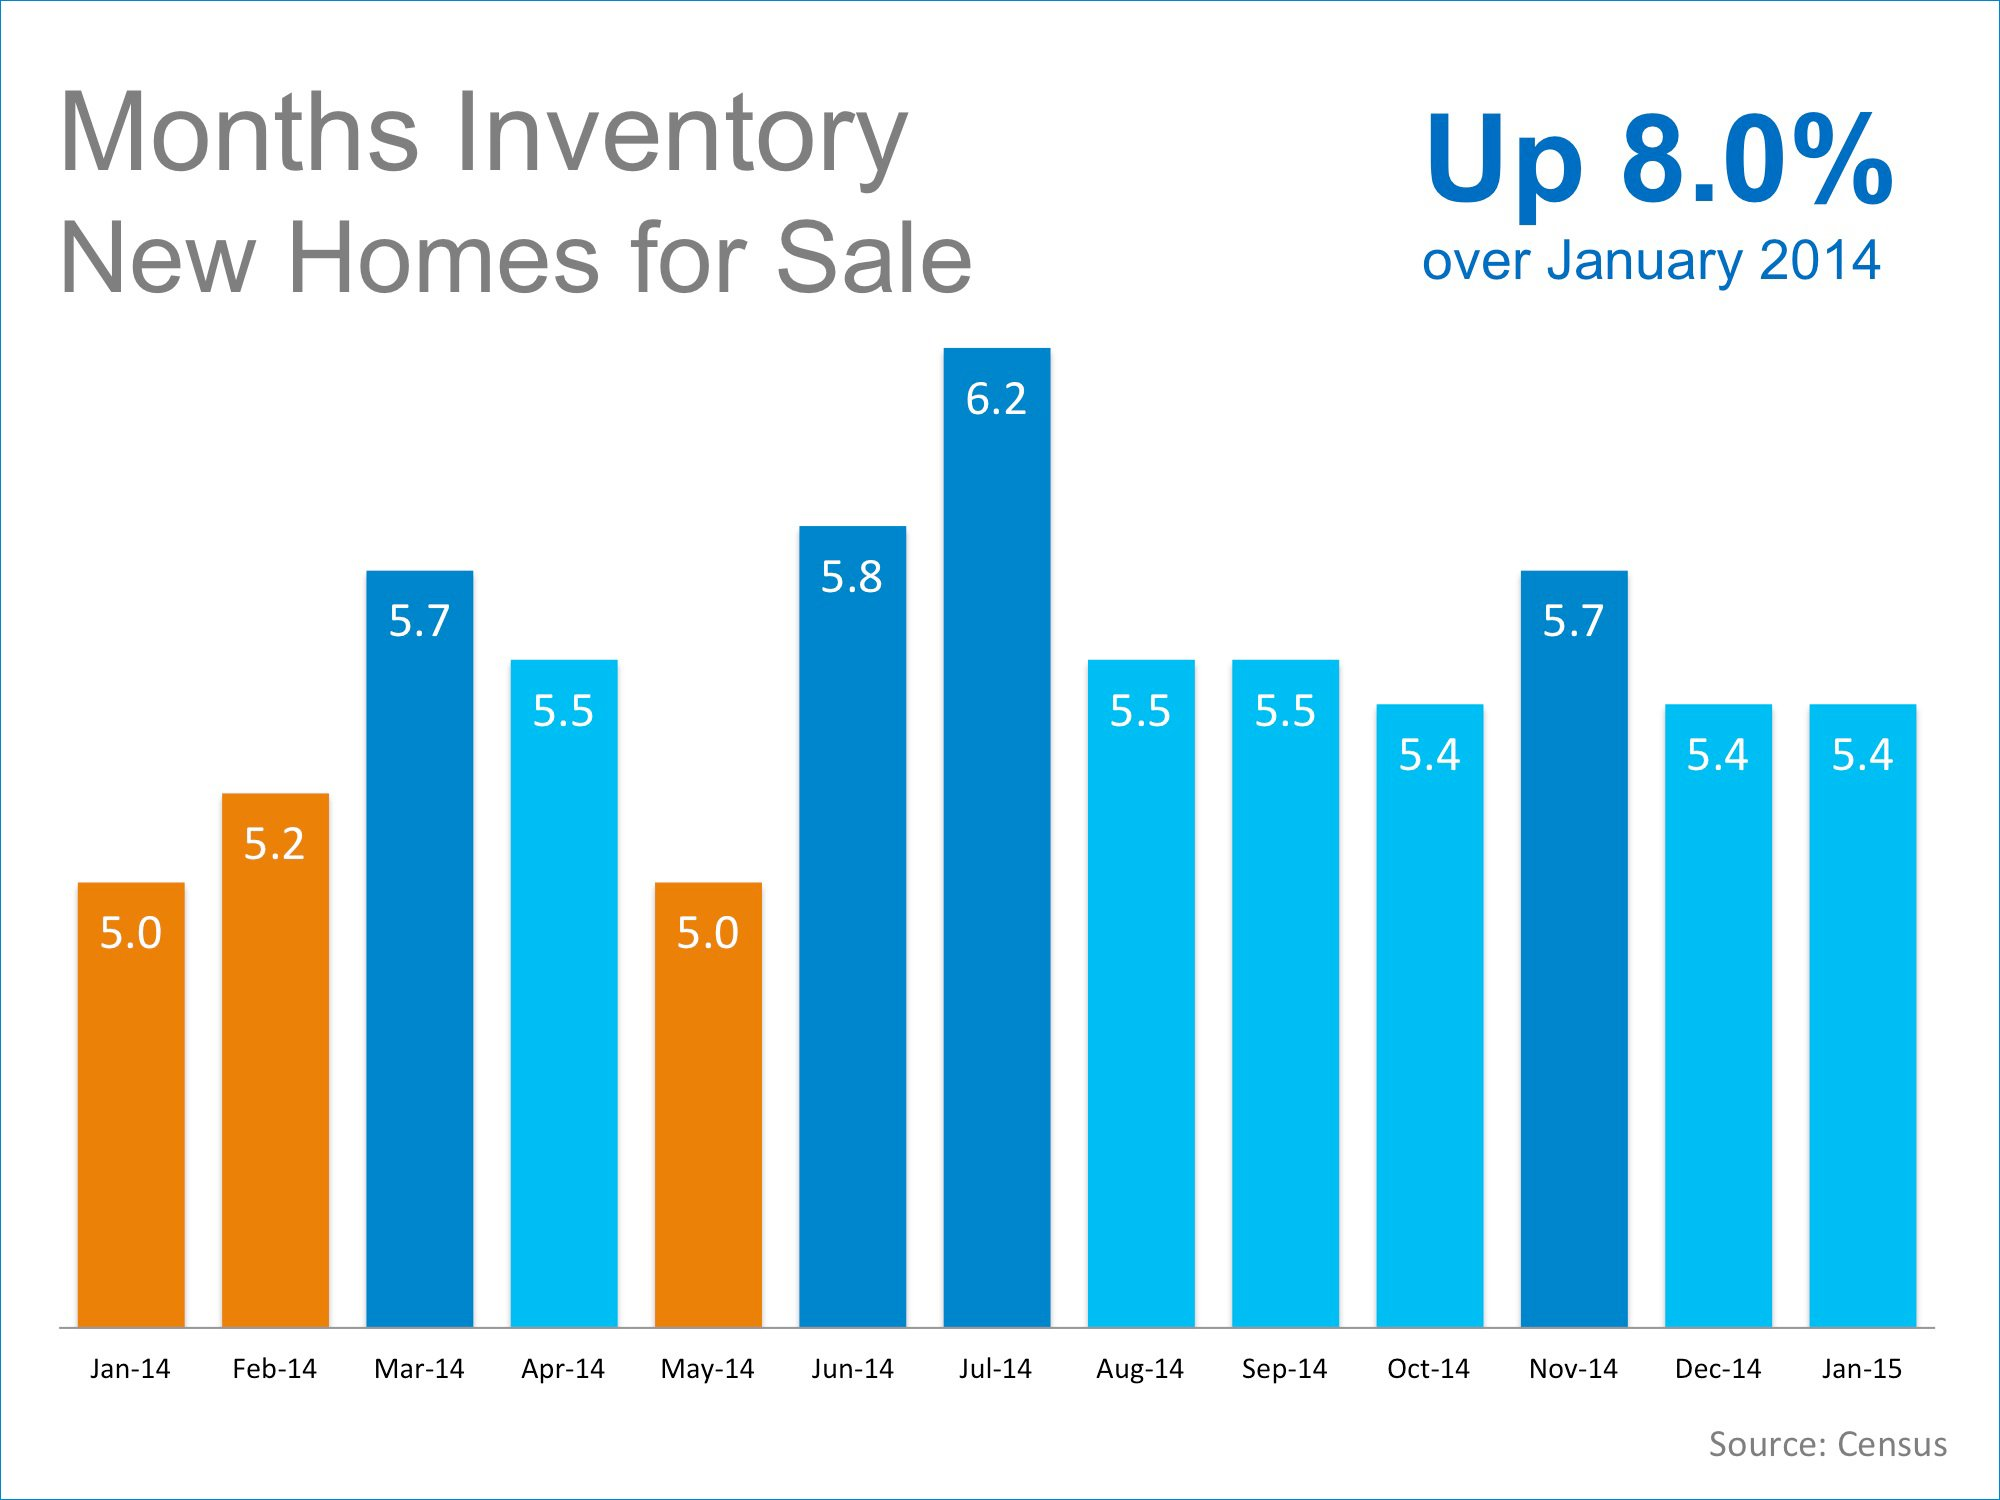 Months Inventory New Homes for Sale   Keeping Current Matters